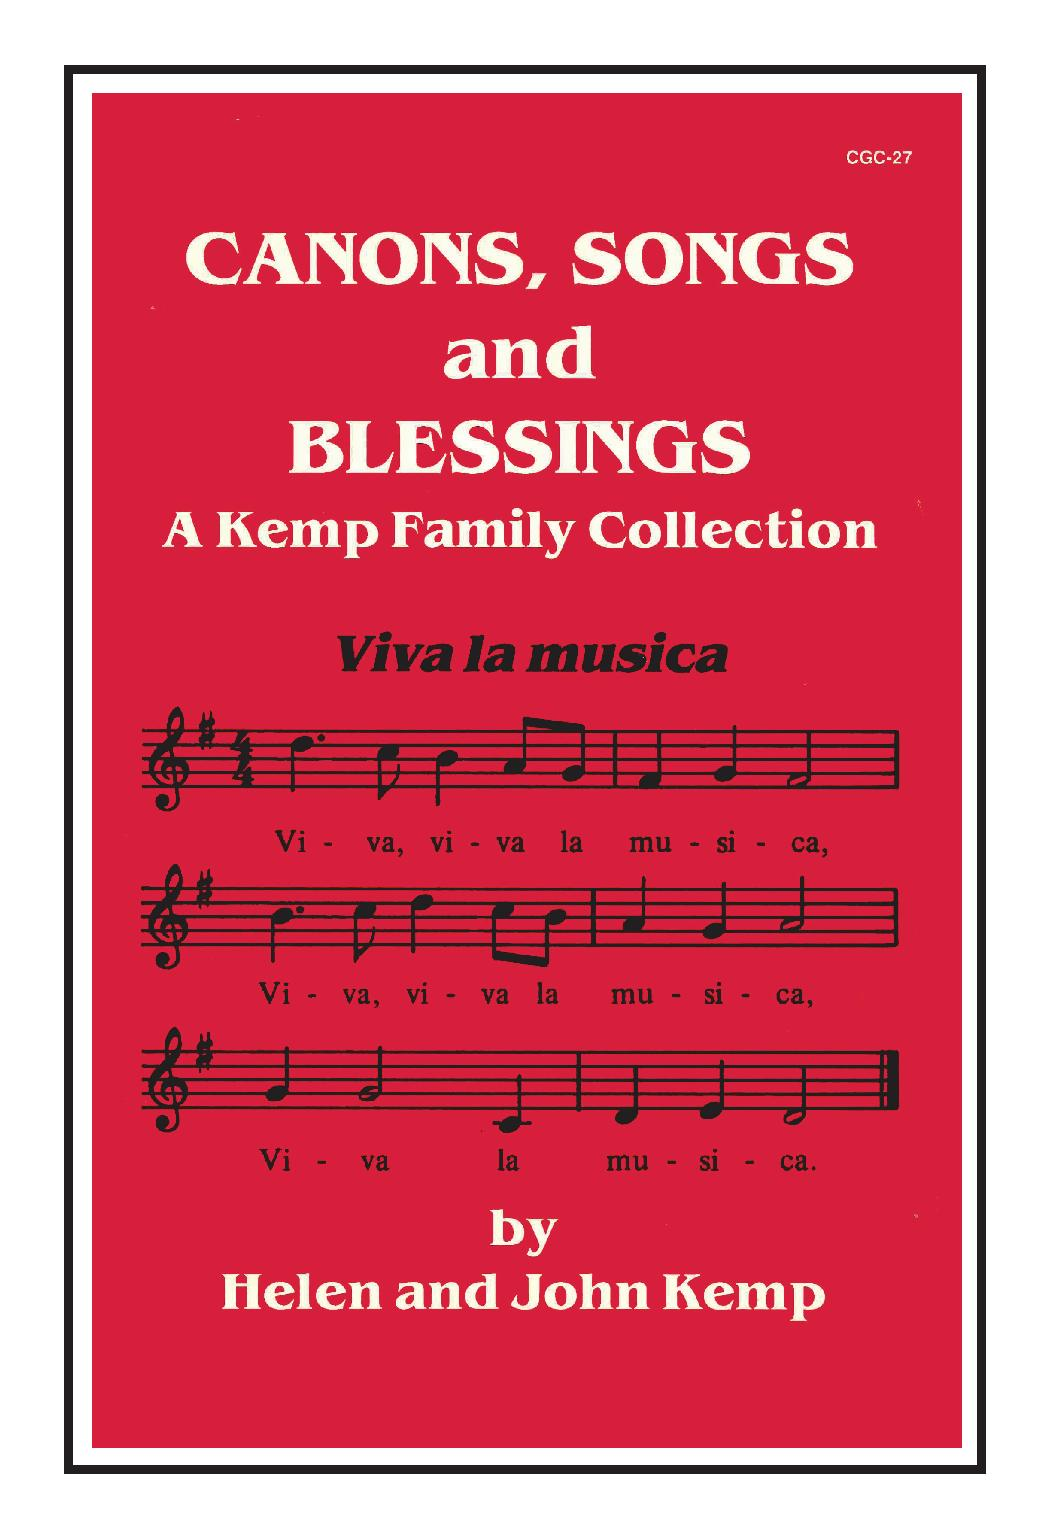 Canons, Songs, and Blessings